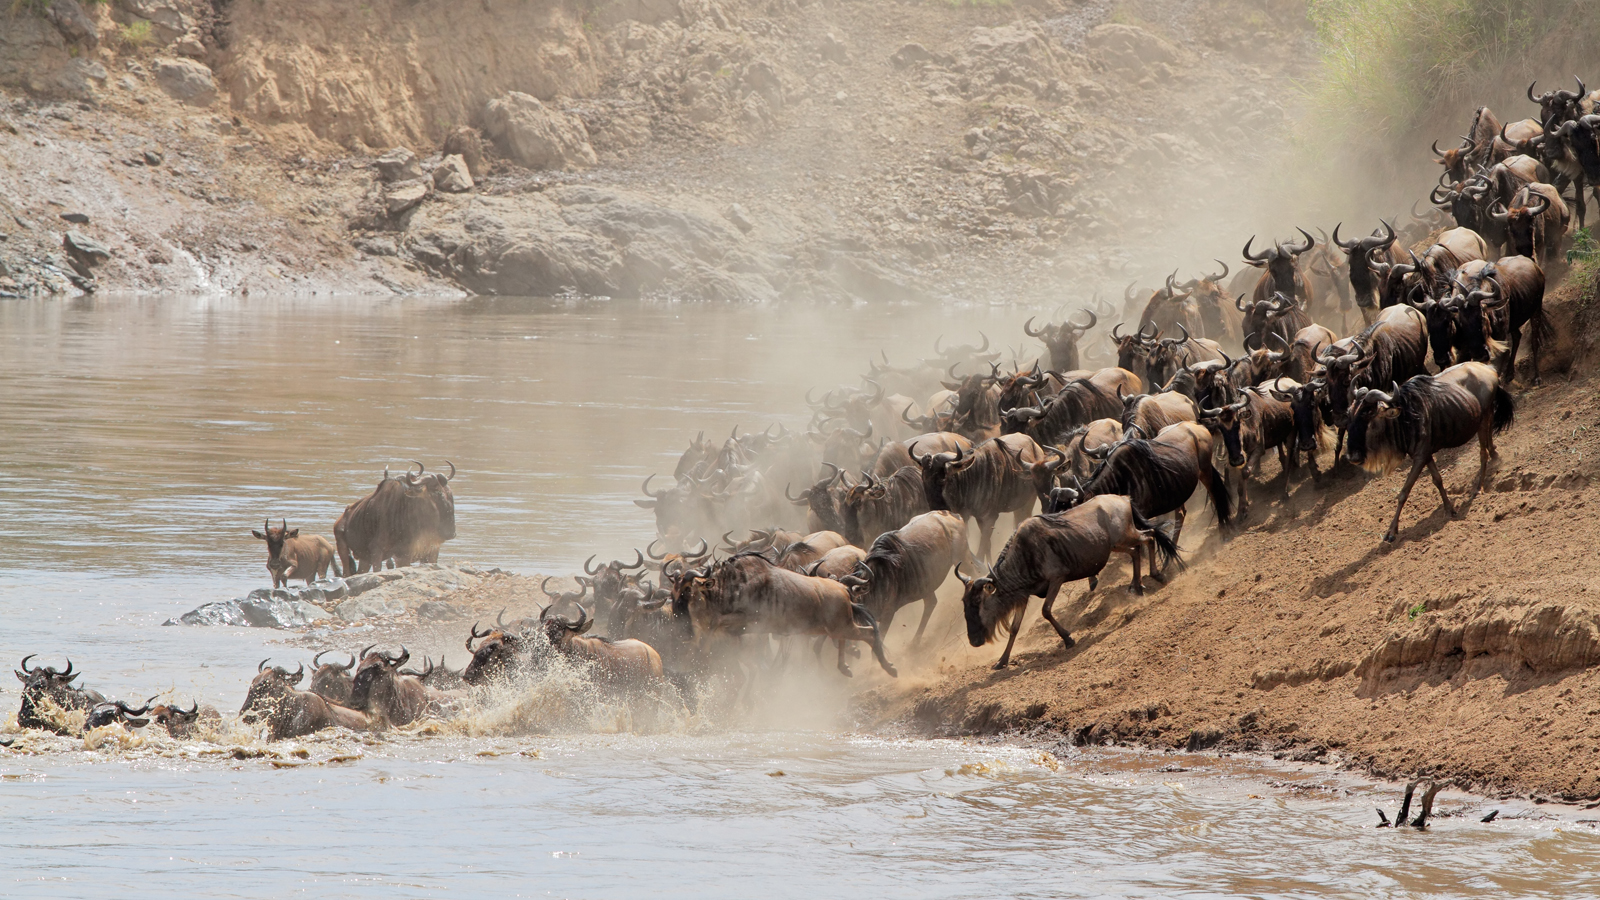 Breathtaking Images of the Great Wildebeest Migration | TakePart